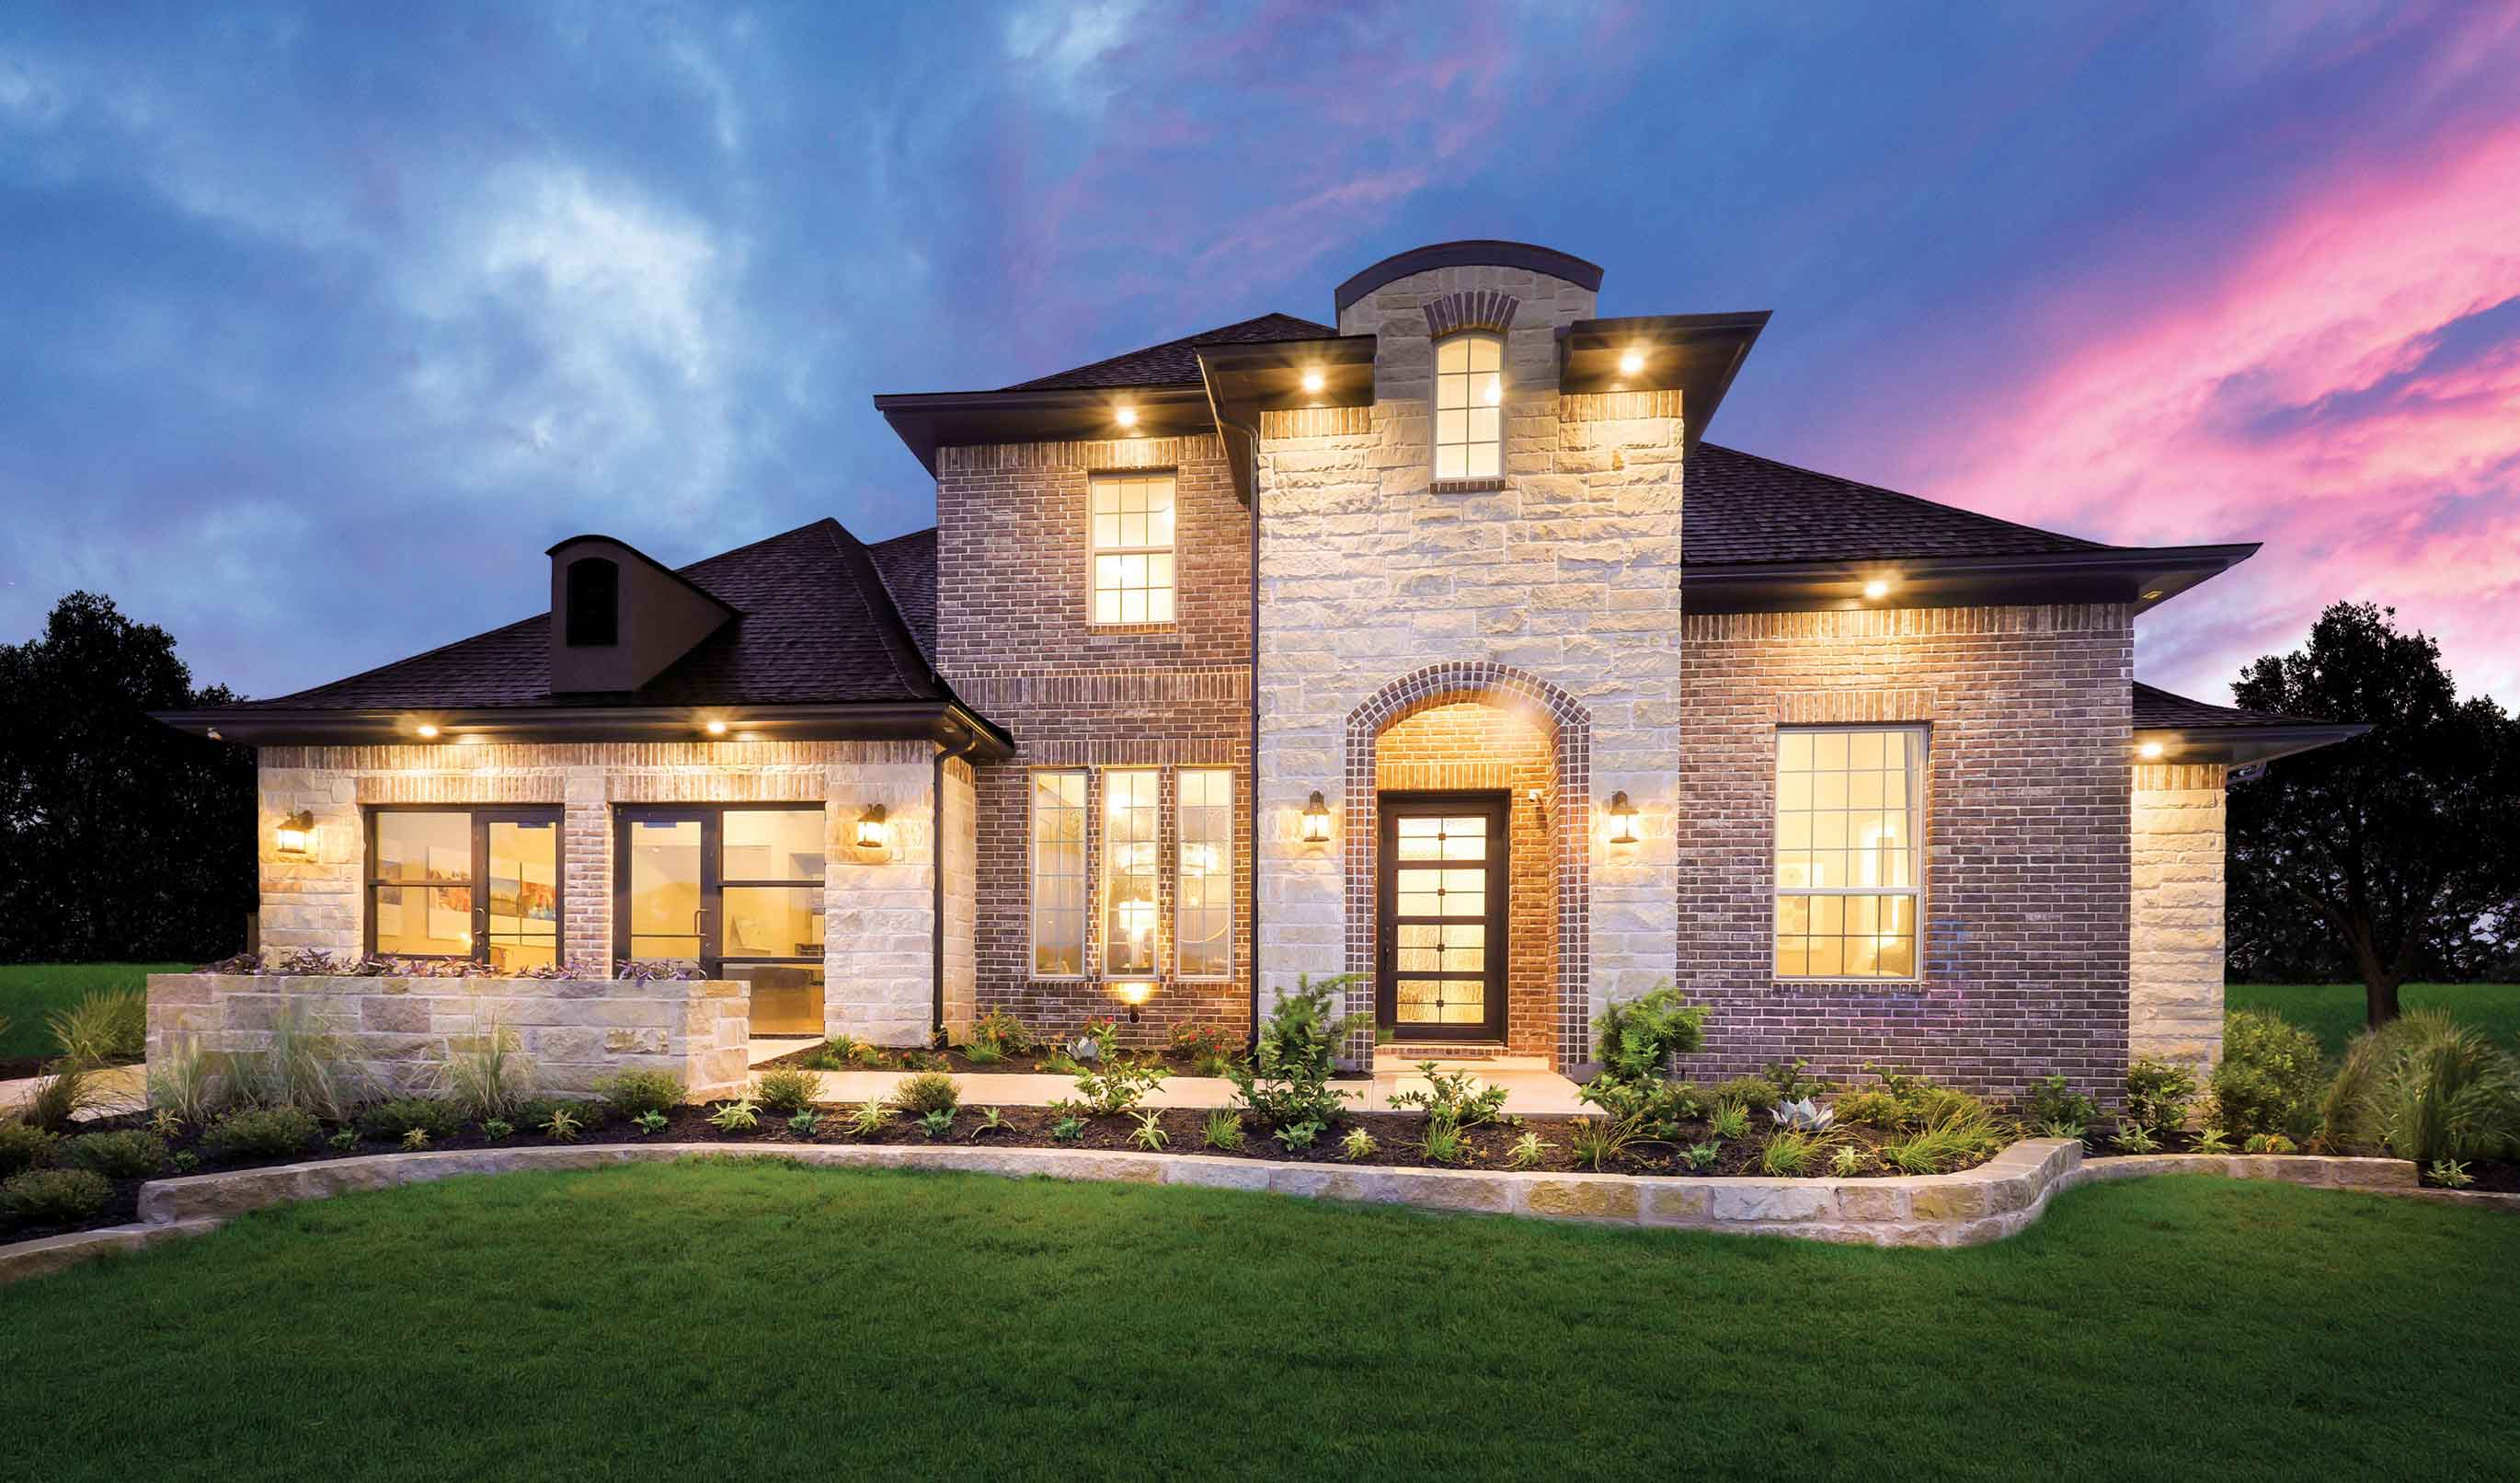 Home Toll Brothers Insurance Agency